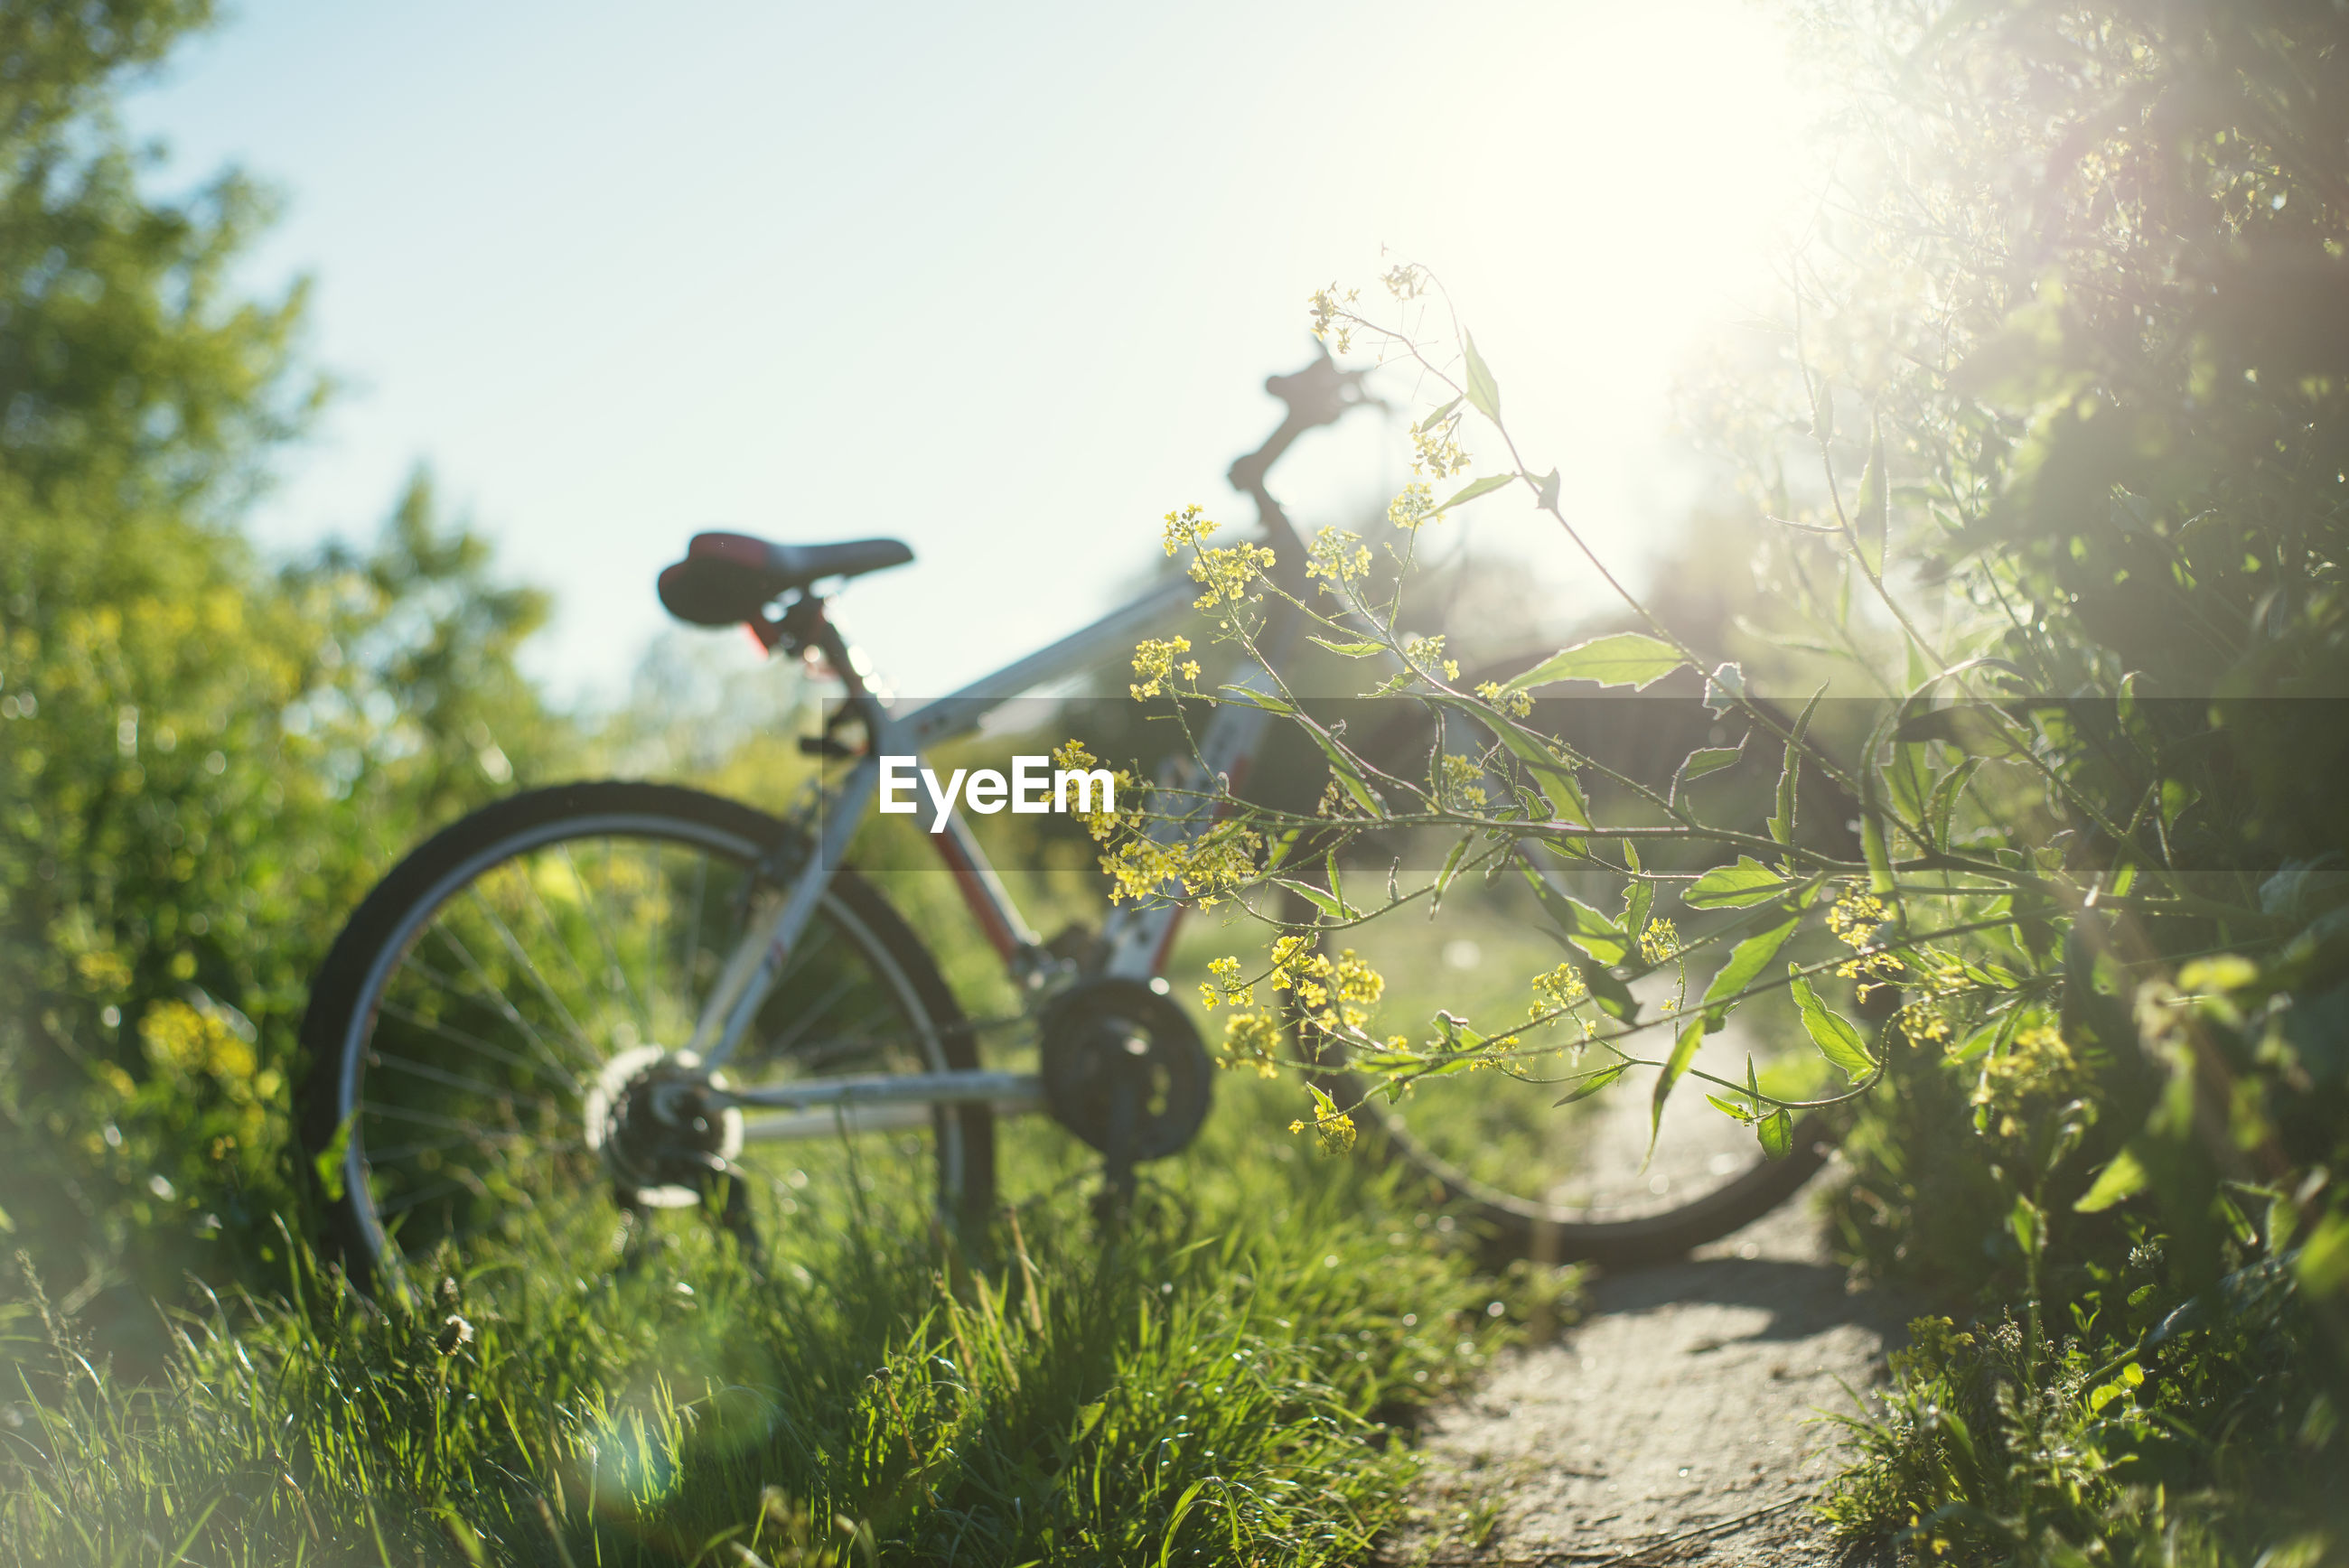 BICYCLE ON ROAD AMIDST TREES